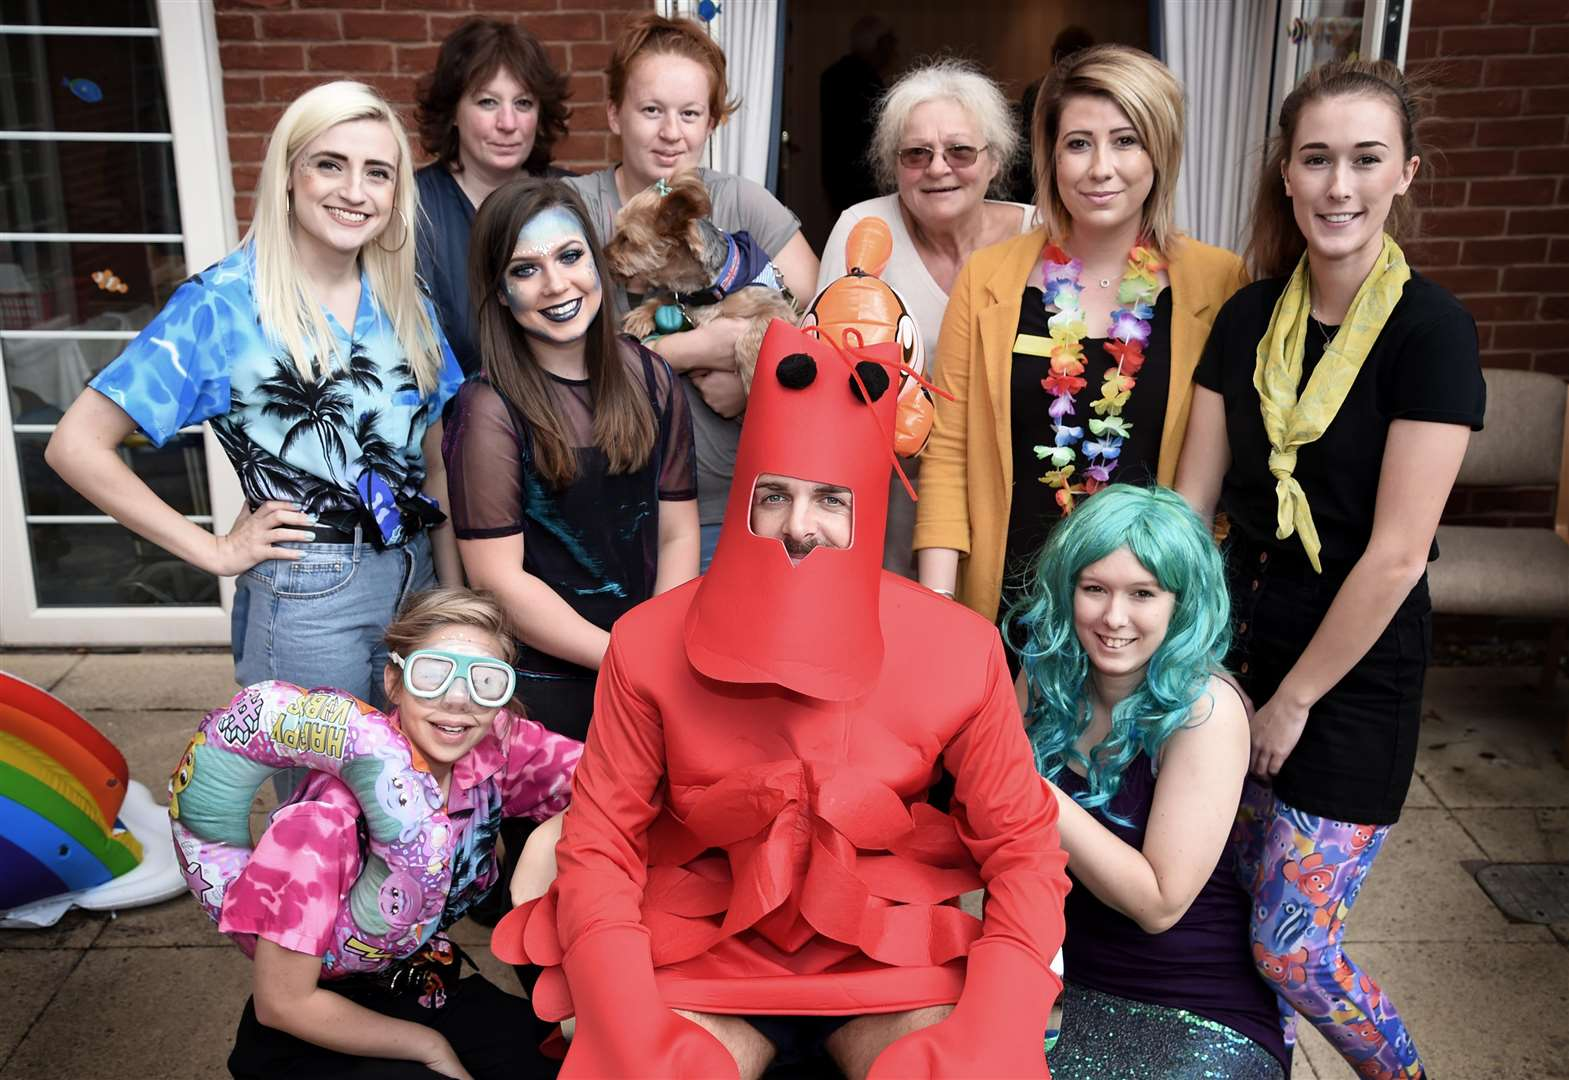 Mermaids join in summer fete at Grantham's Avery Lodge care home